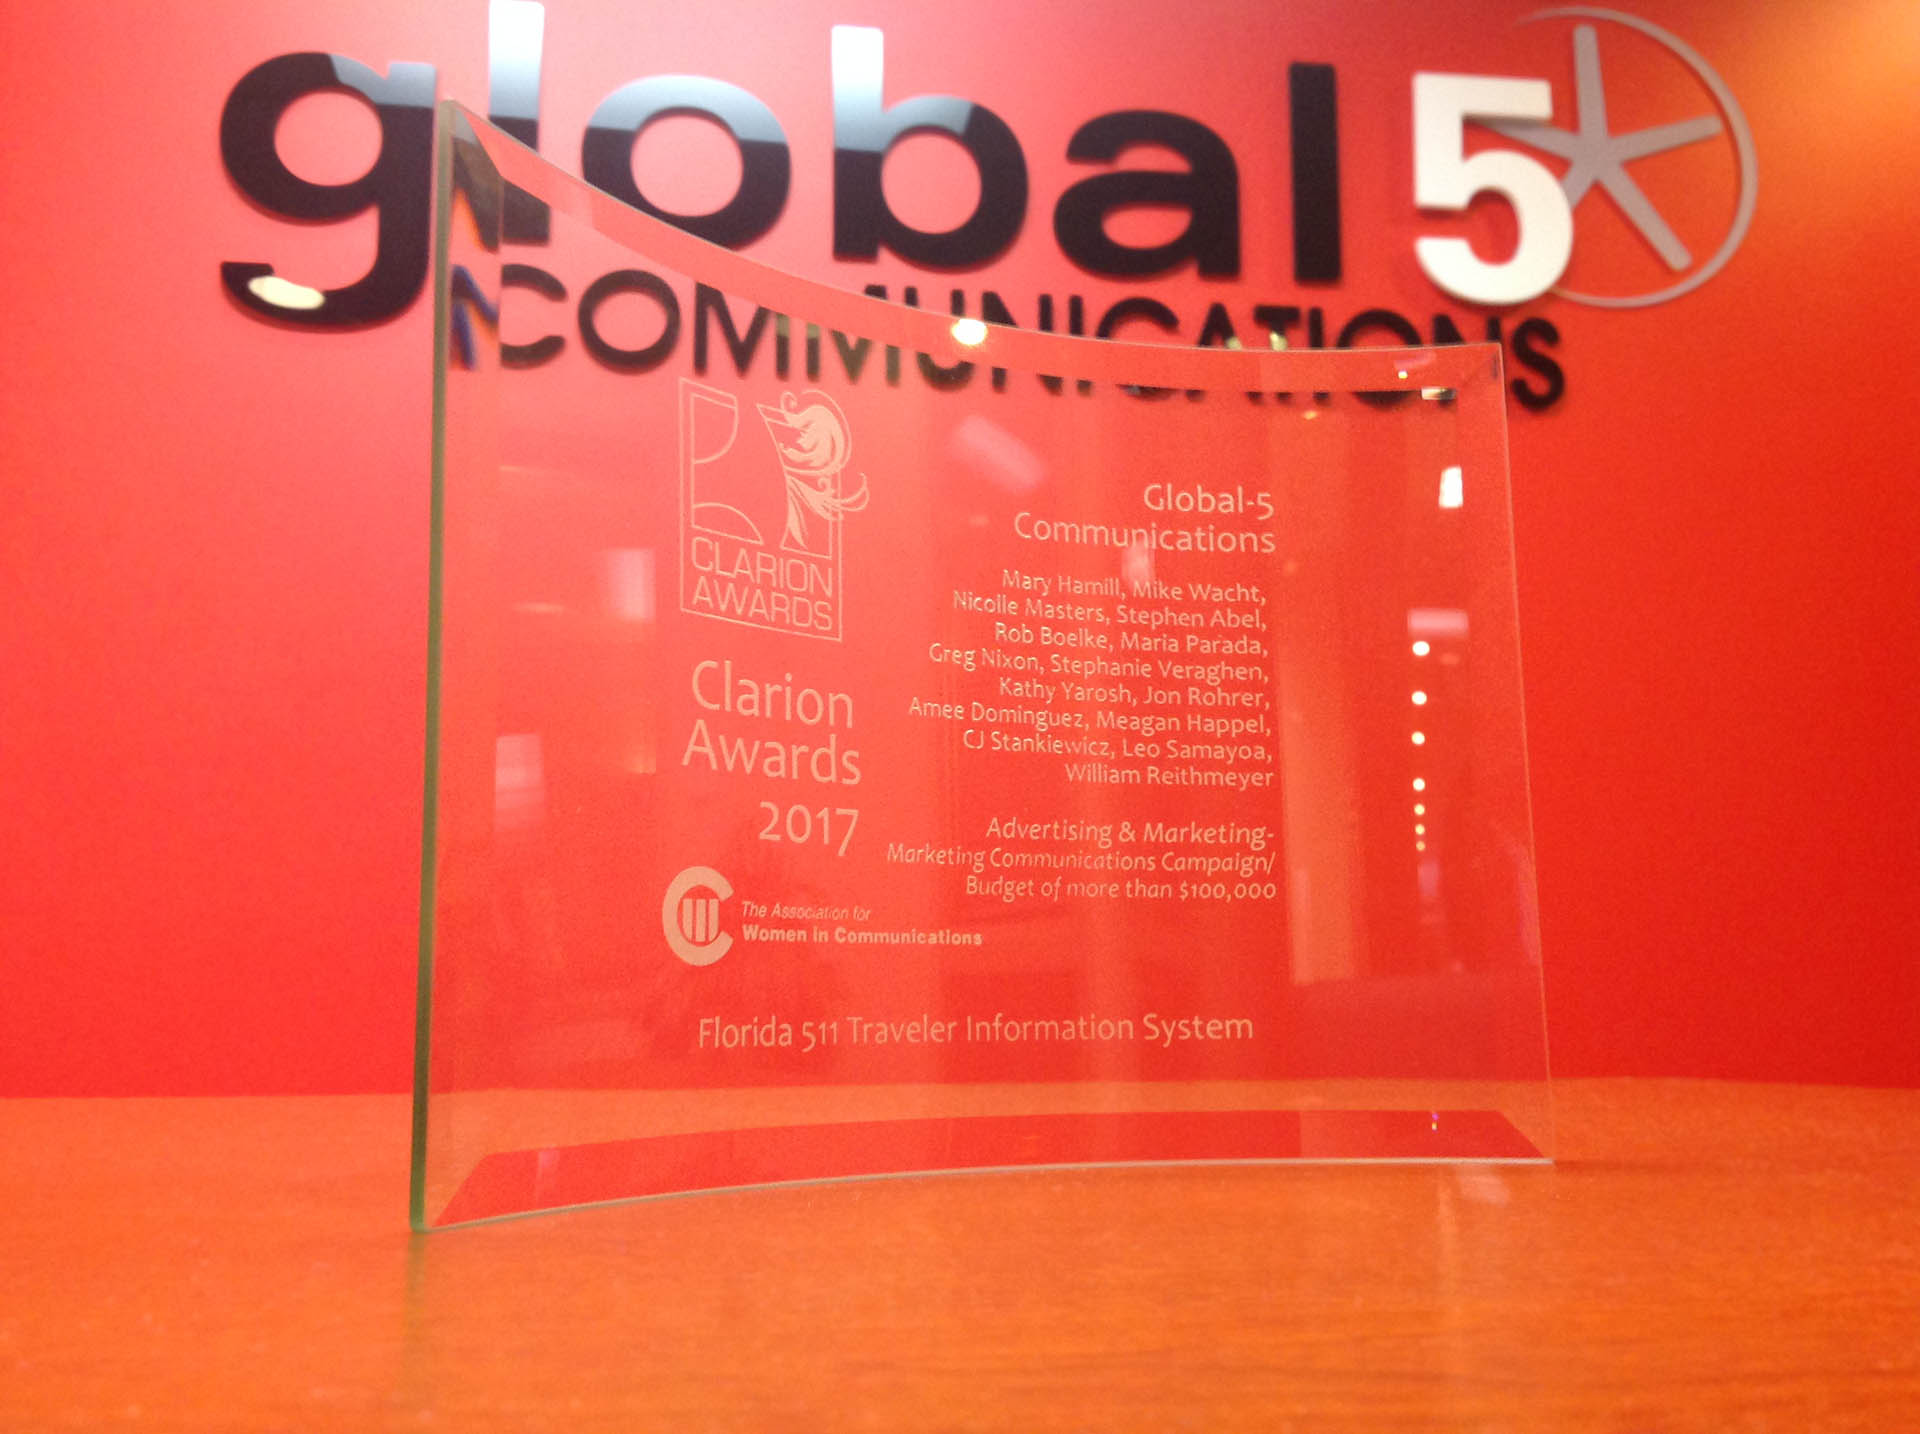 Global-5 Communications CEO Mary Hamill Wins 2017 Clarion Award